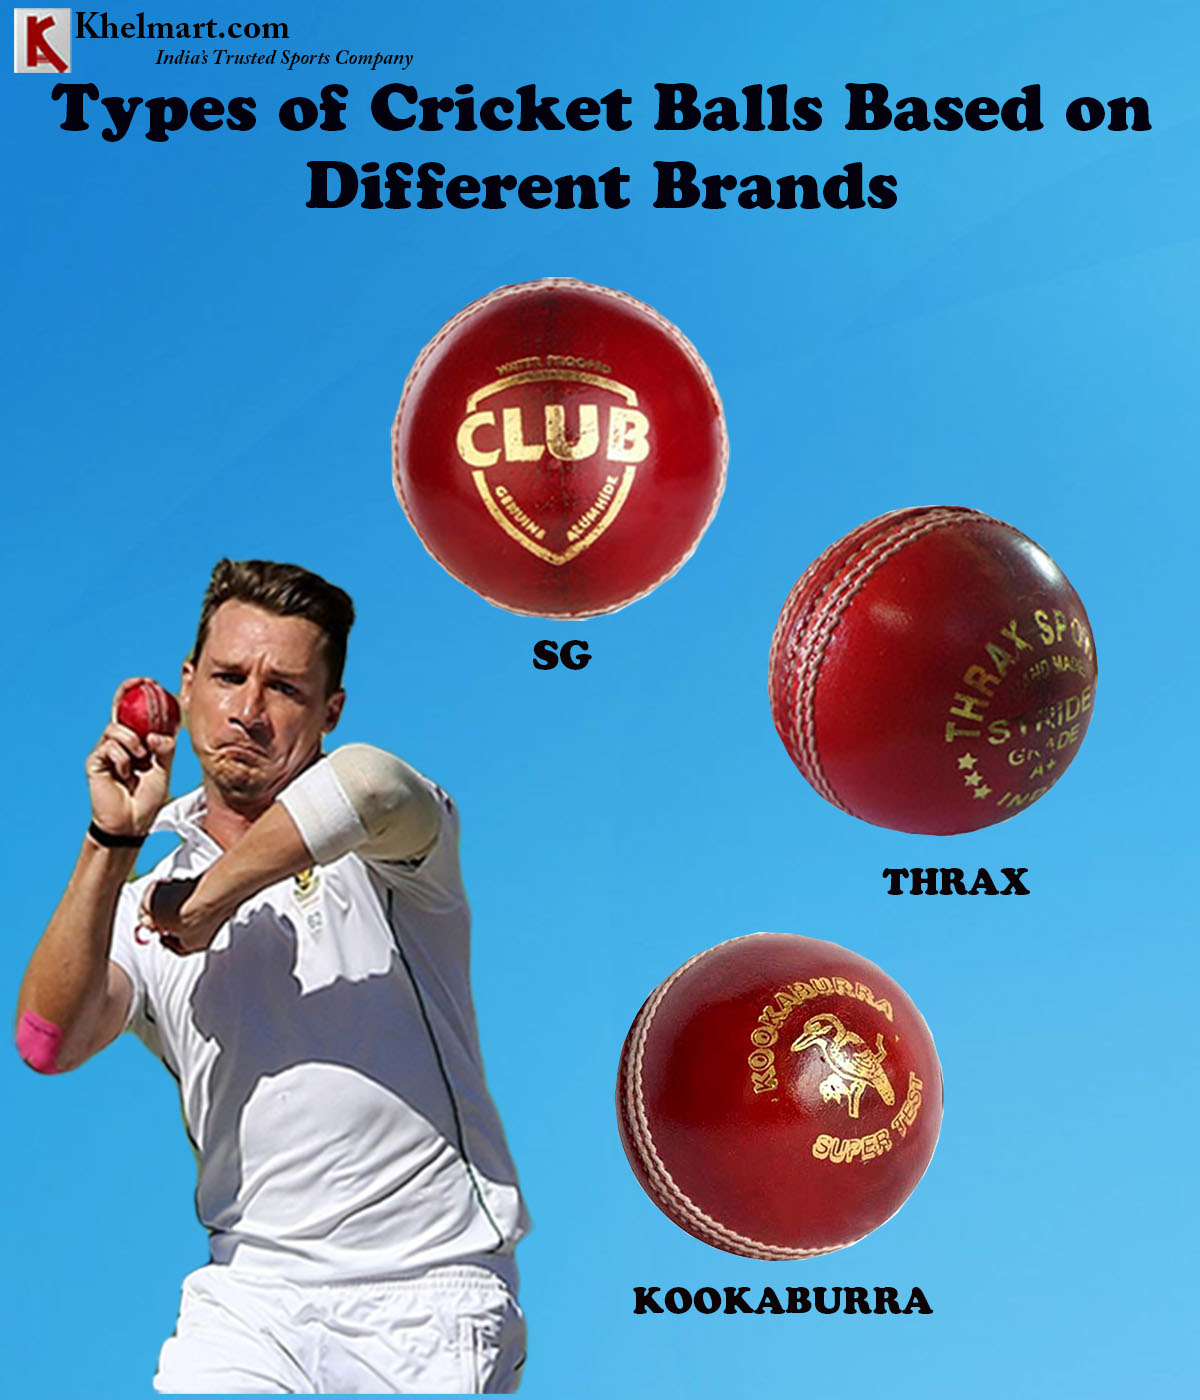 Types of Cricket Balls Based On Different Brands